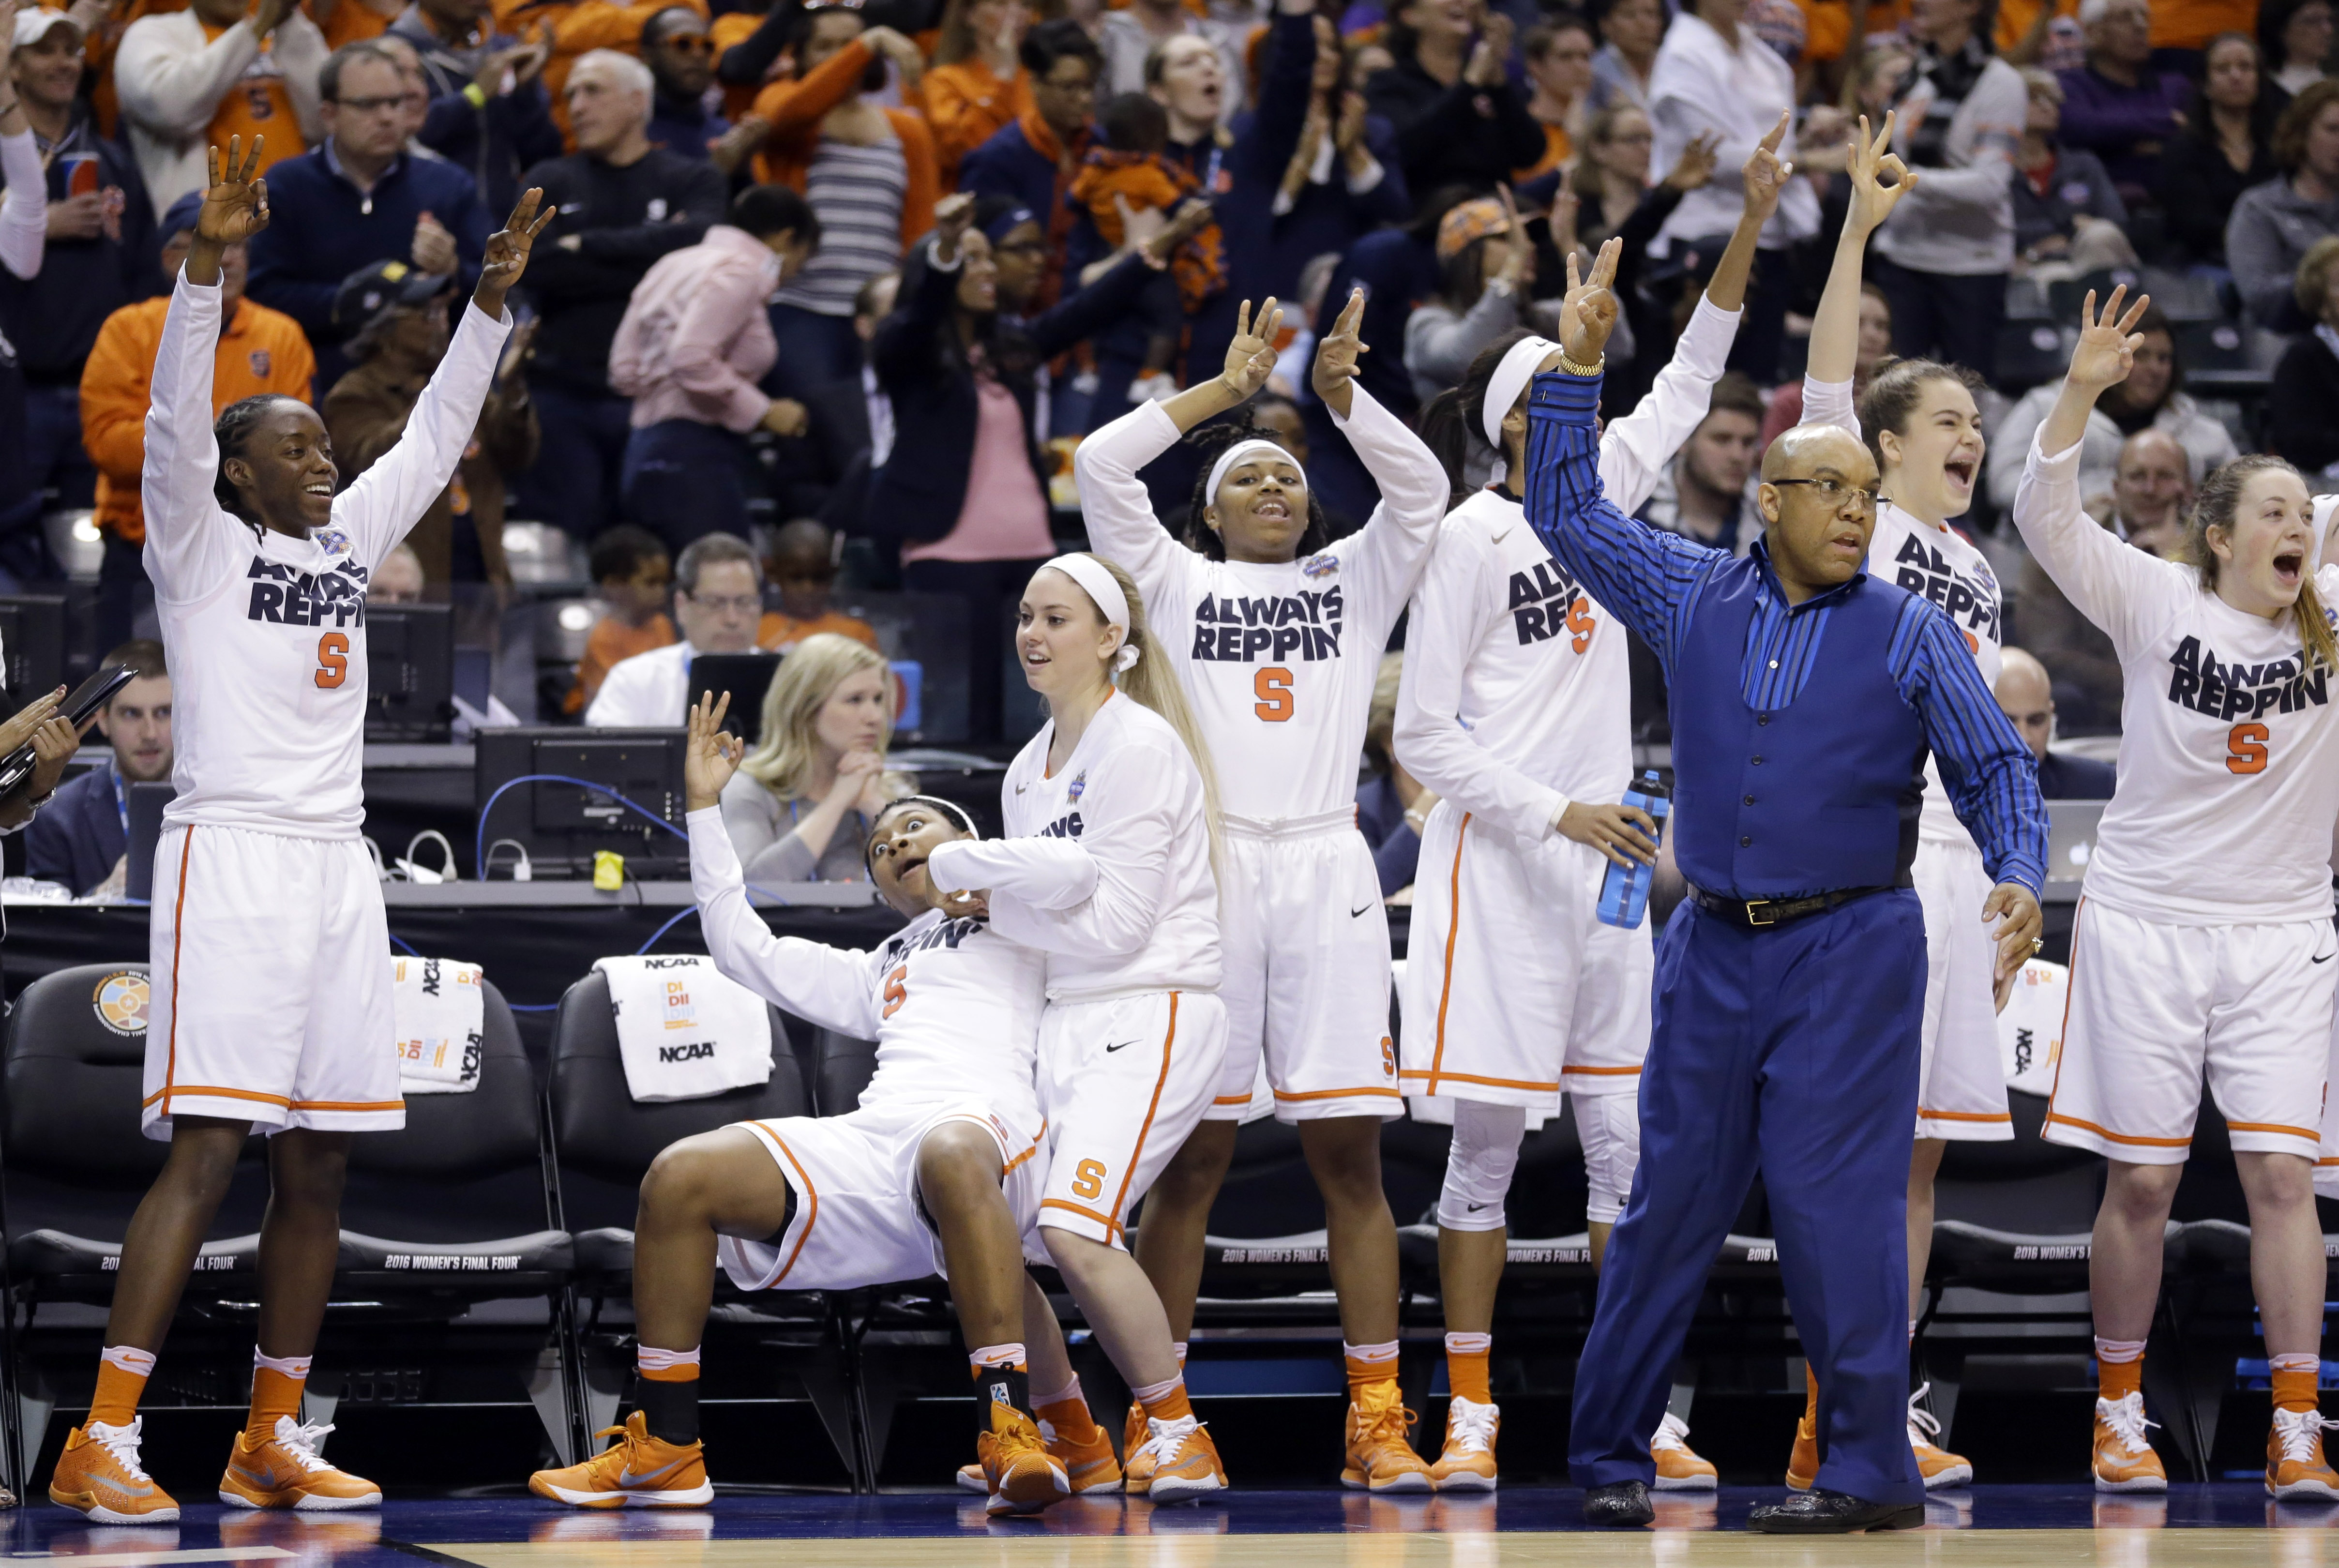 Syracuse head coach Quentin Hillsman and players react after a three-point basket during the first half of a national semifinal game against Washington, at the women's Final Four in the NCAA college basketball tournament Sunday, April 3, 2016, in Indianap